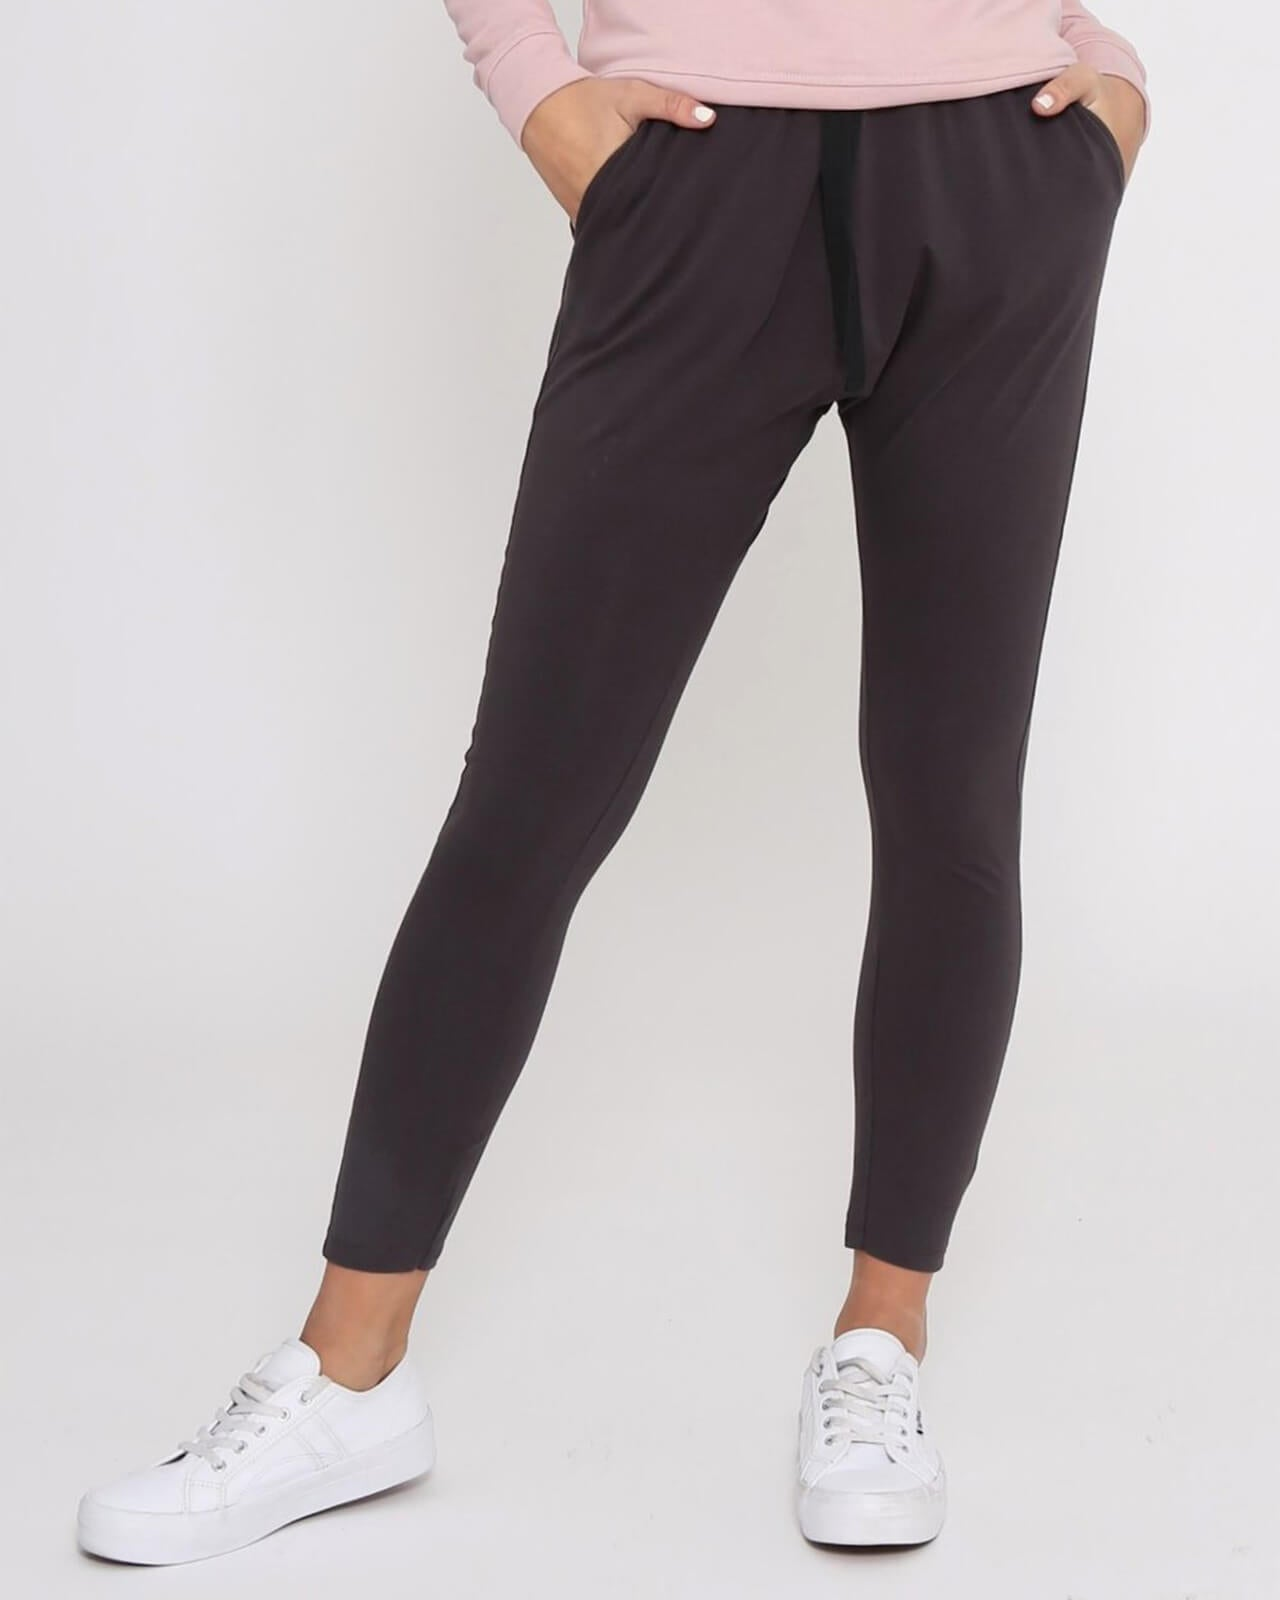 Jade Joggers - Dark Grey